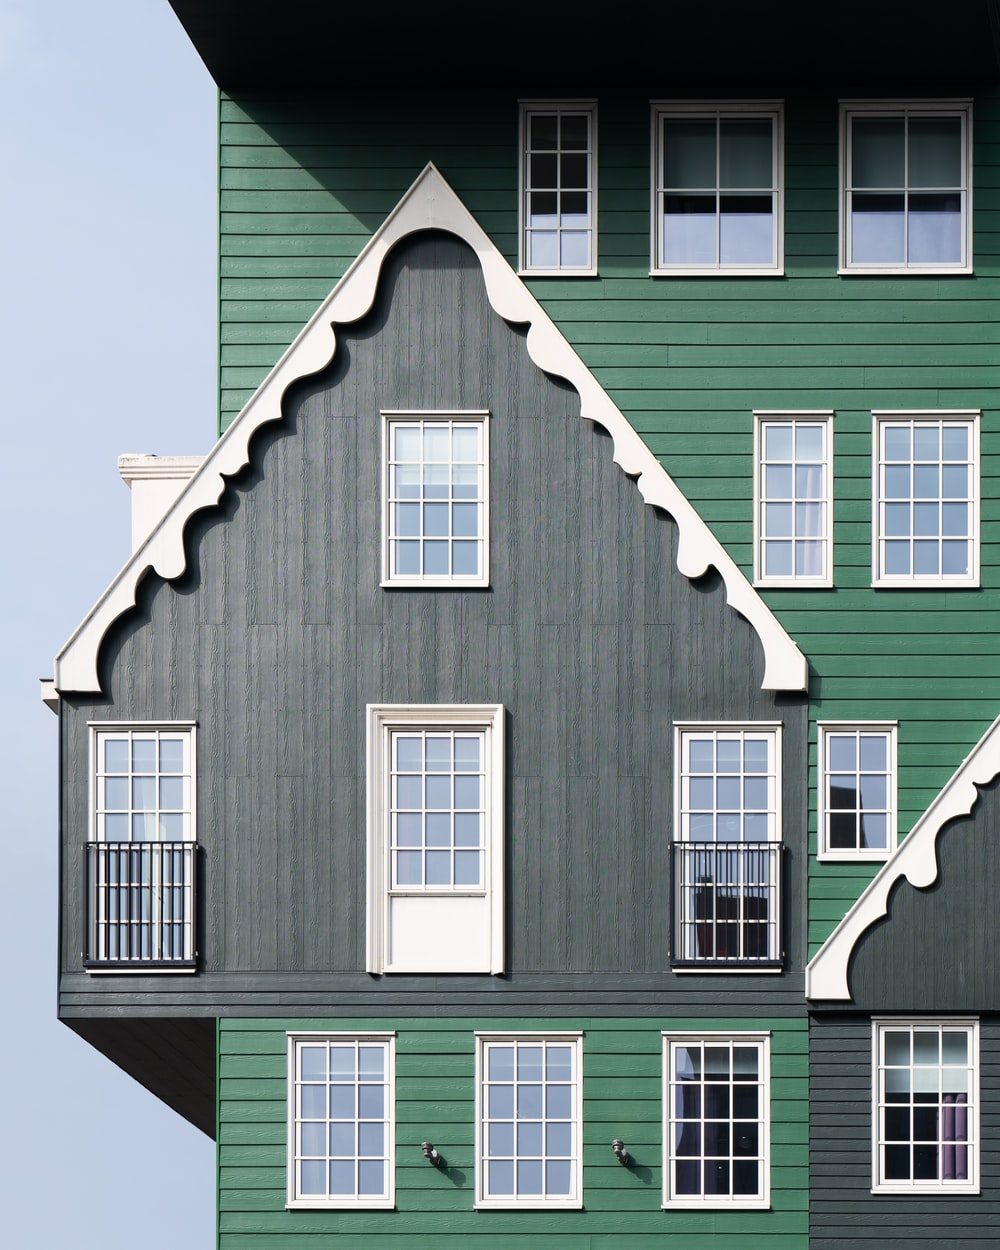 green and white wooden house